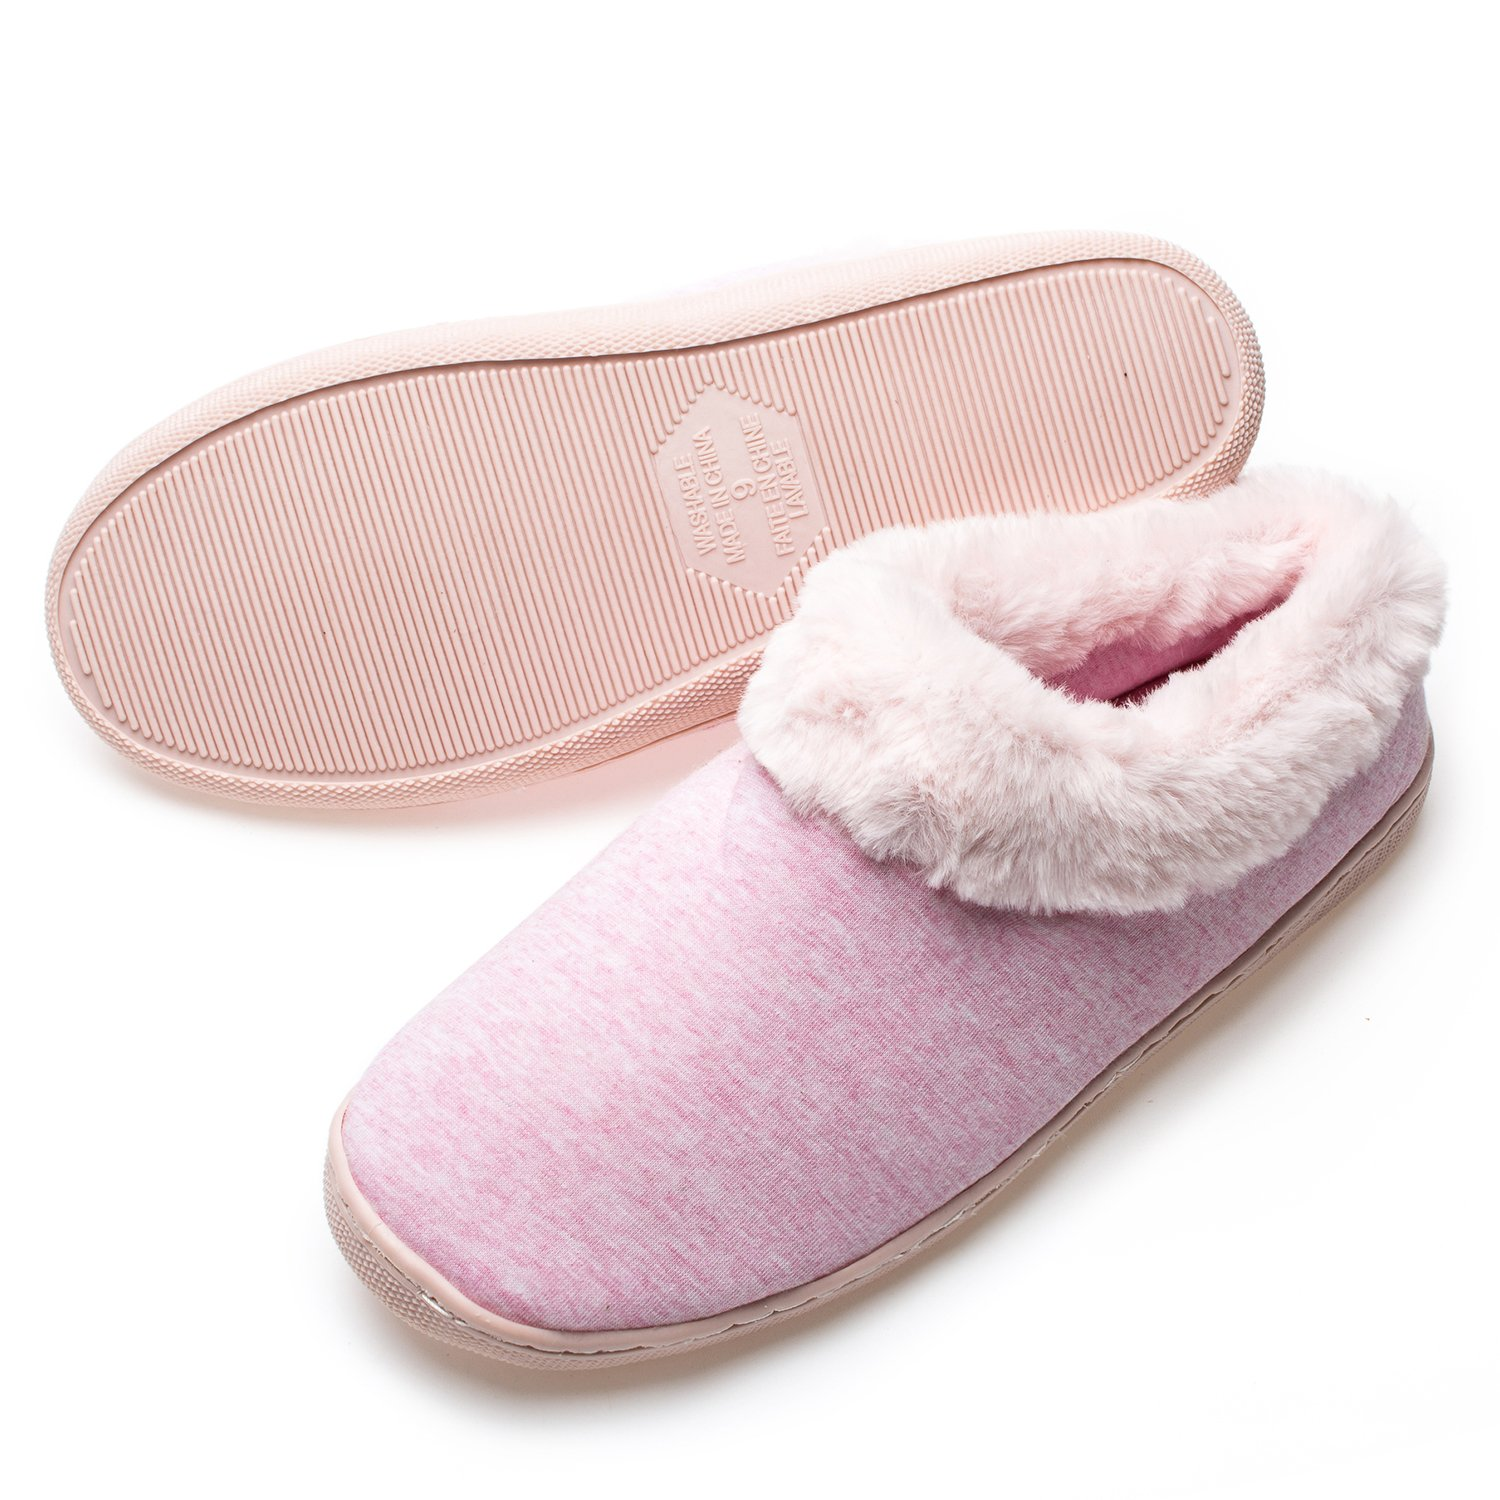 4d8eadb0dada Shoes Womens Comfort Coral Fleece Memory Foam Slippers Fuzzy Plush Lining  Slip-on Clog House Shoes ...